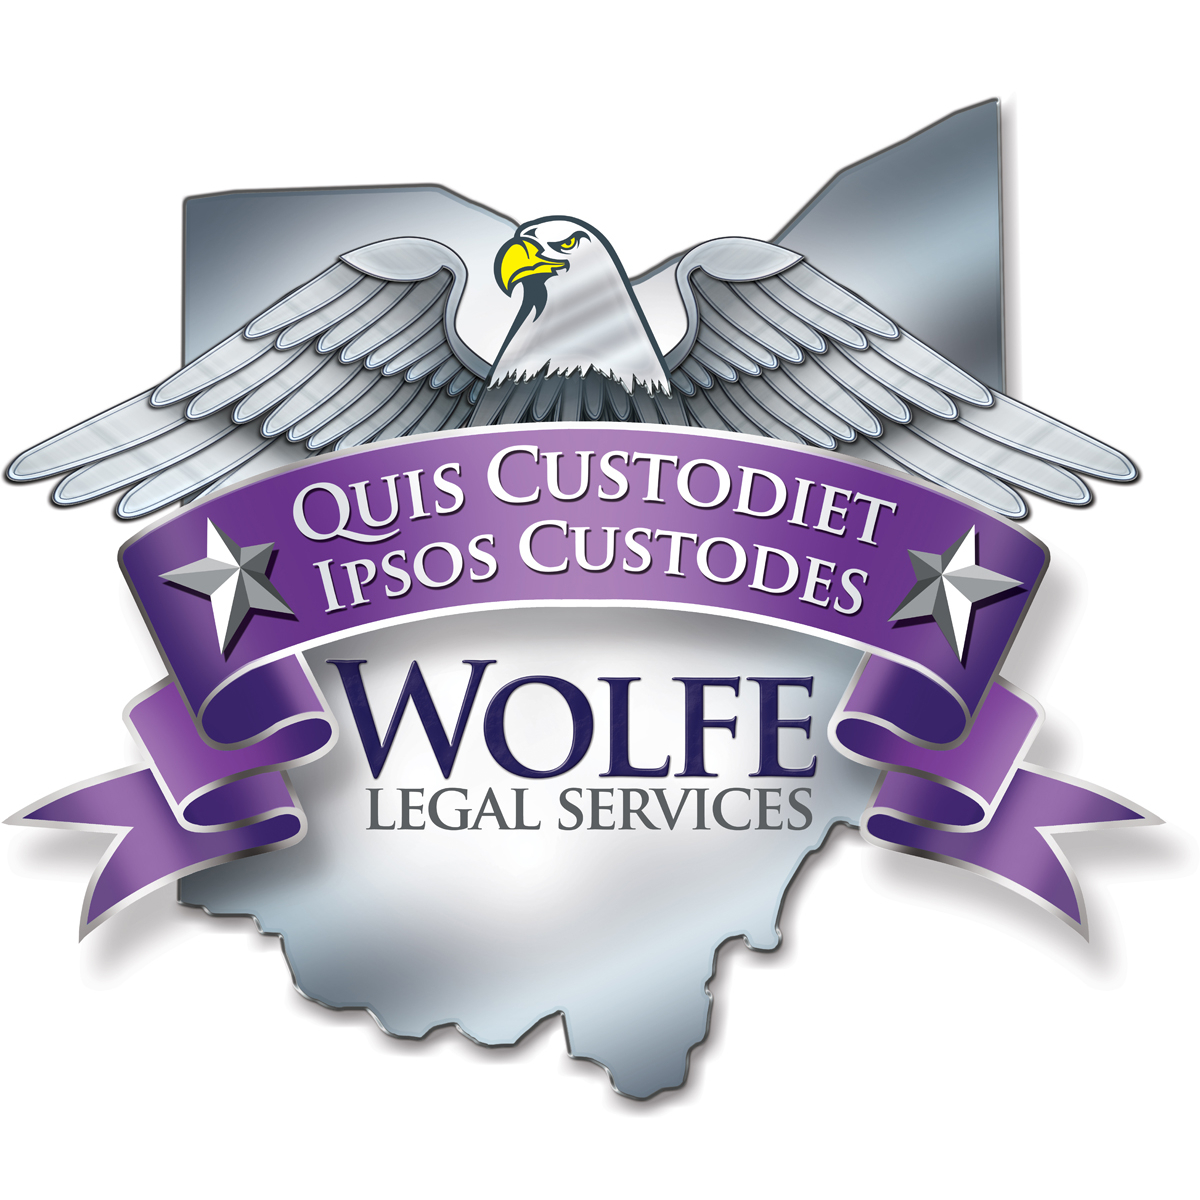 Wolfe Legal Services